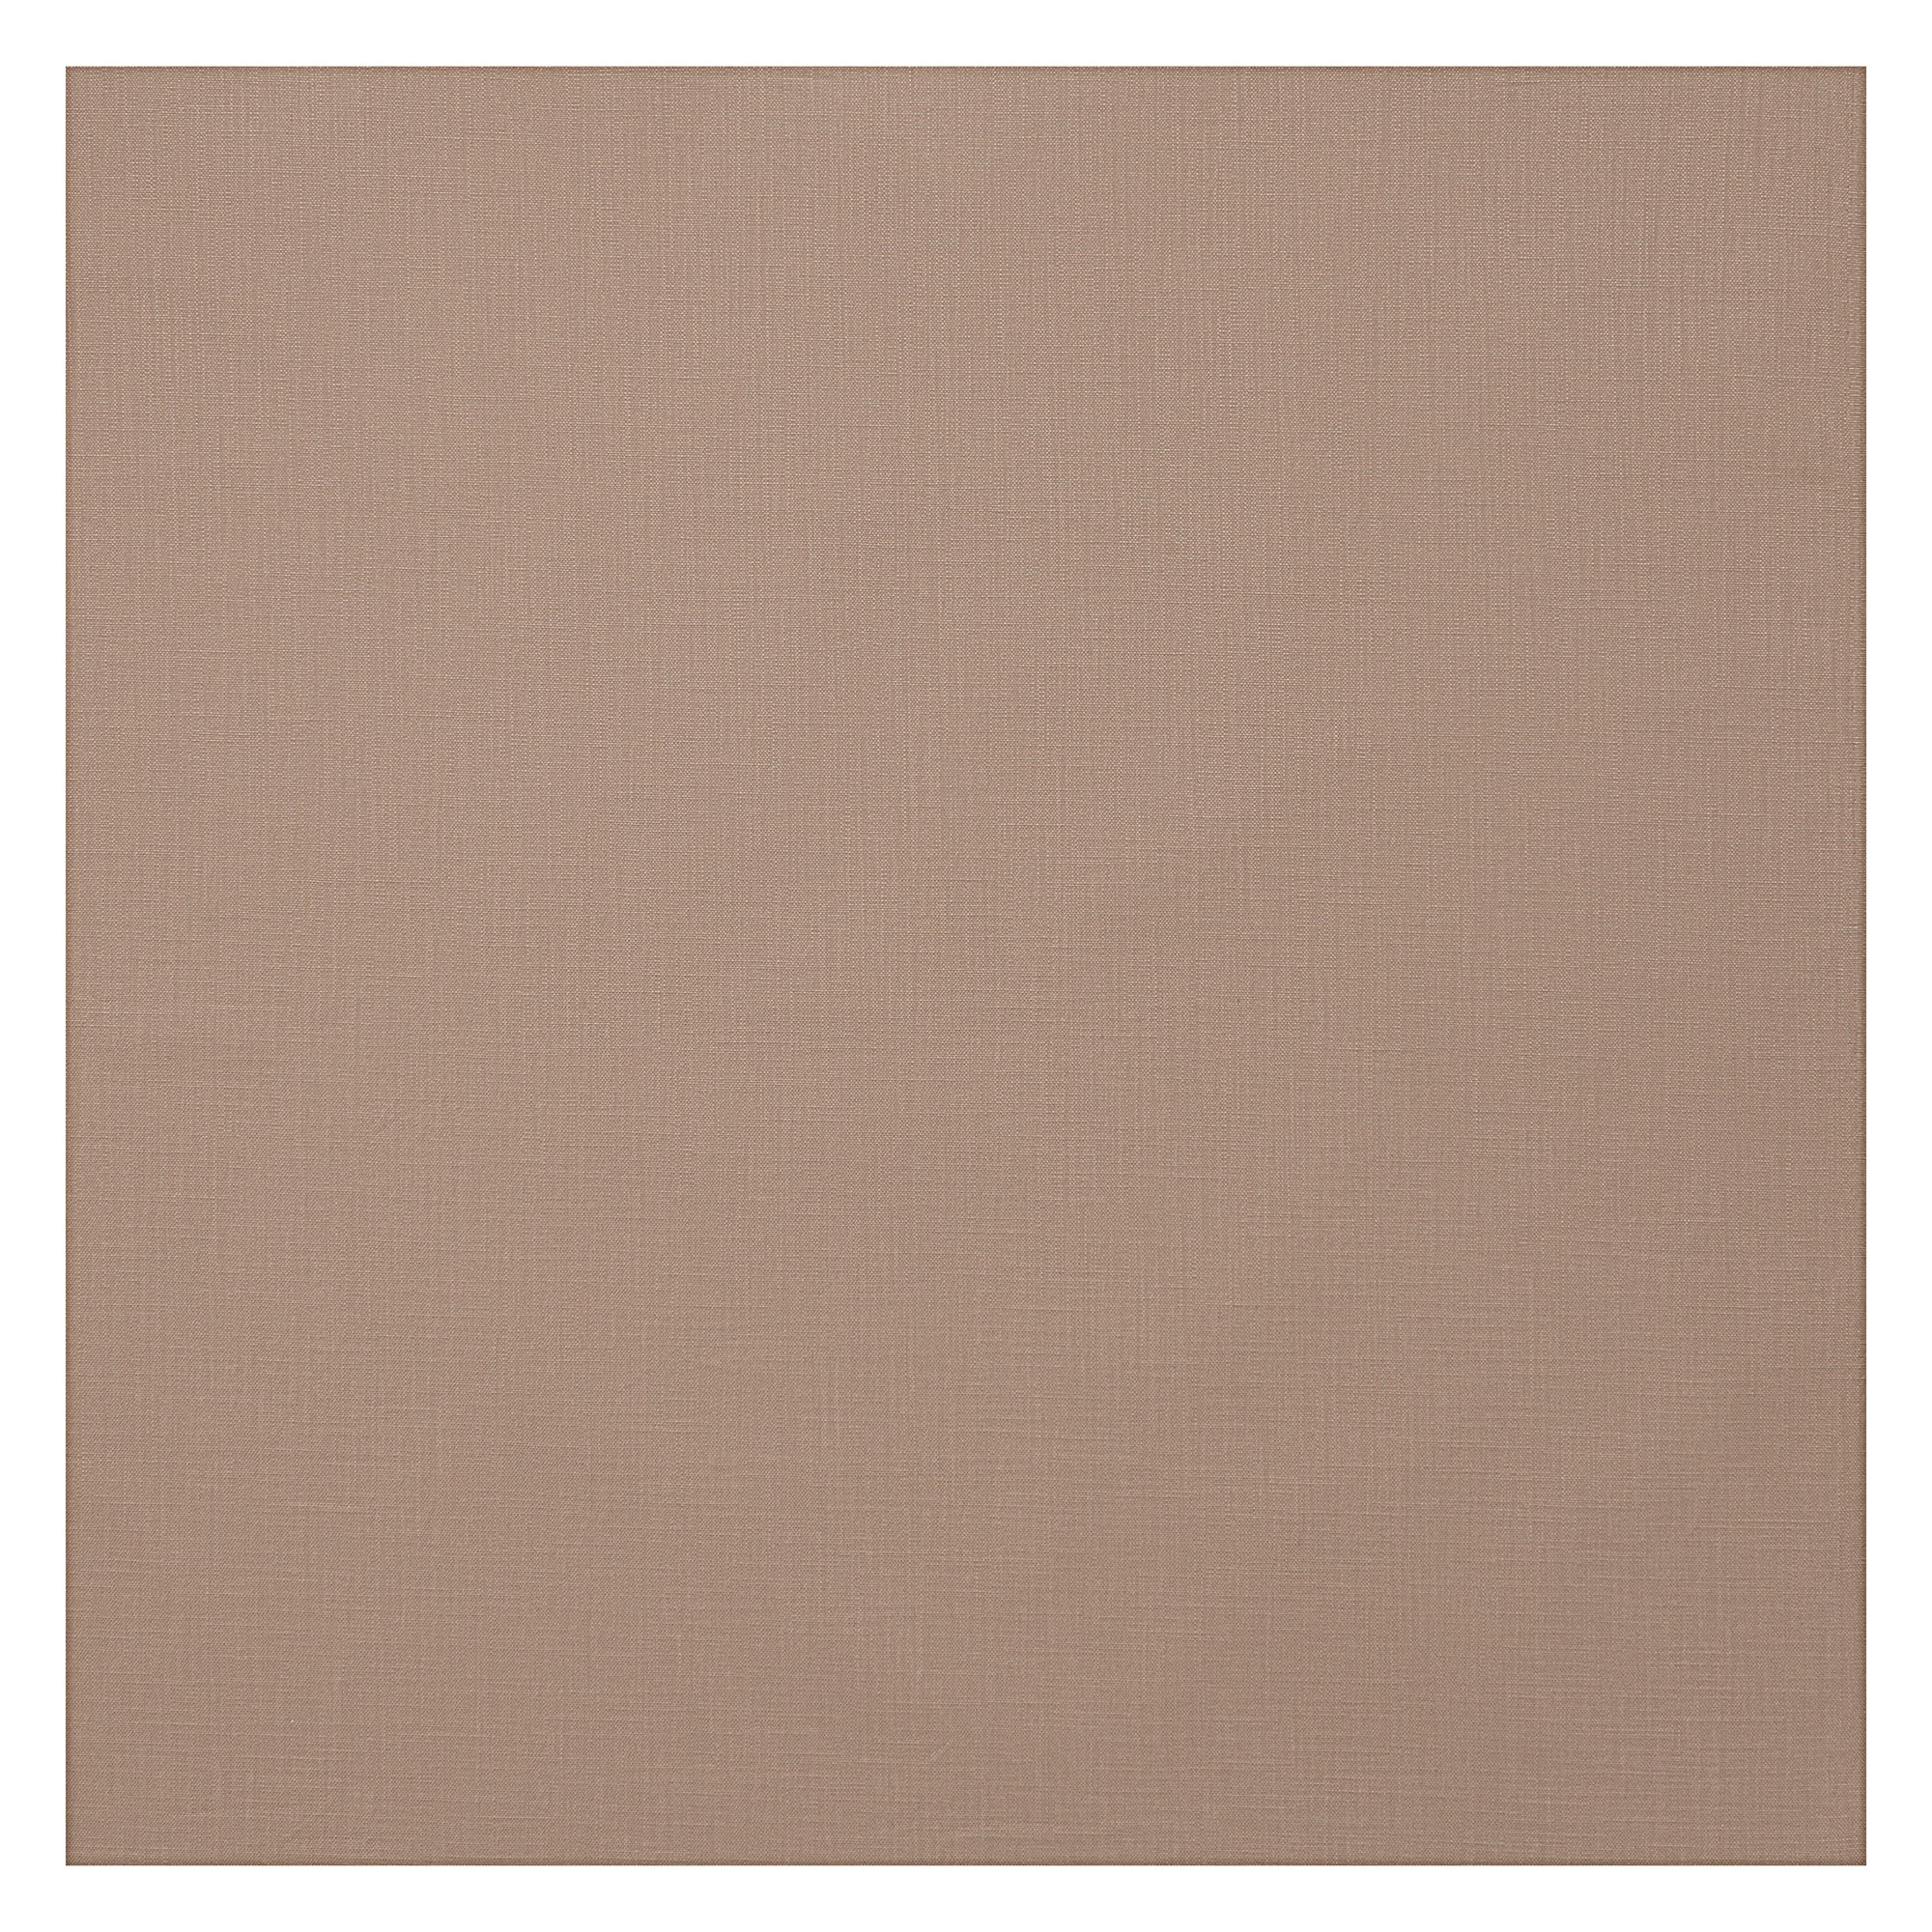 John Lewis Pier Semi Plain Fabric